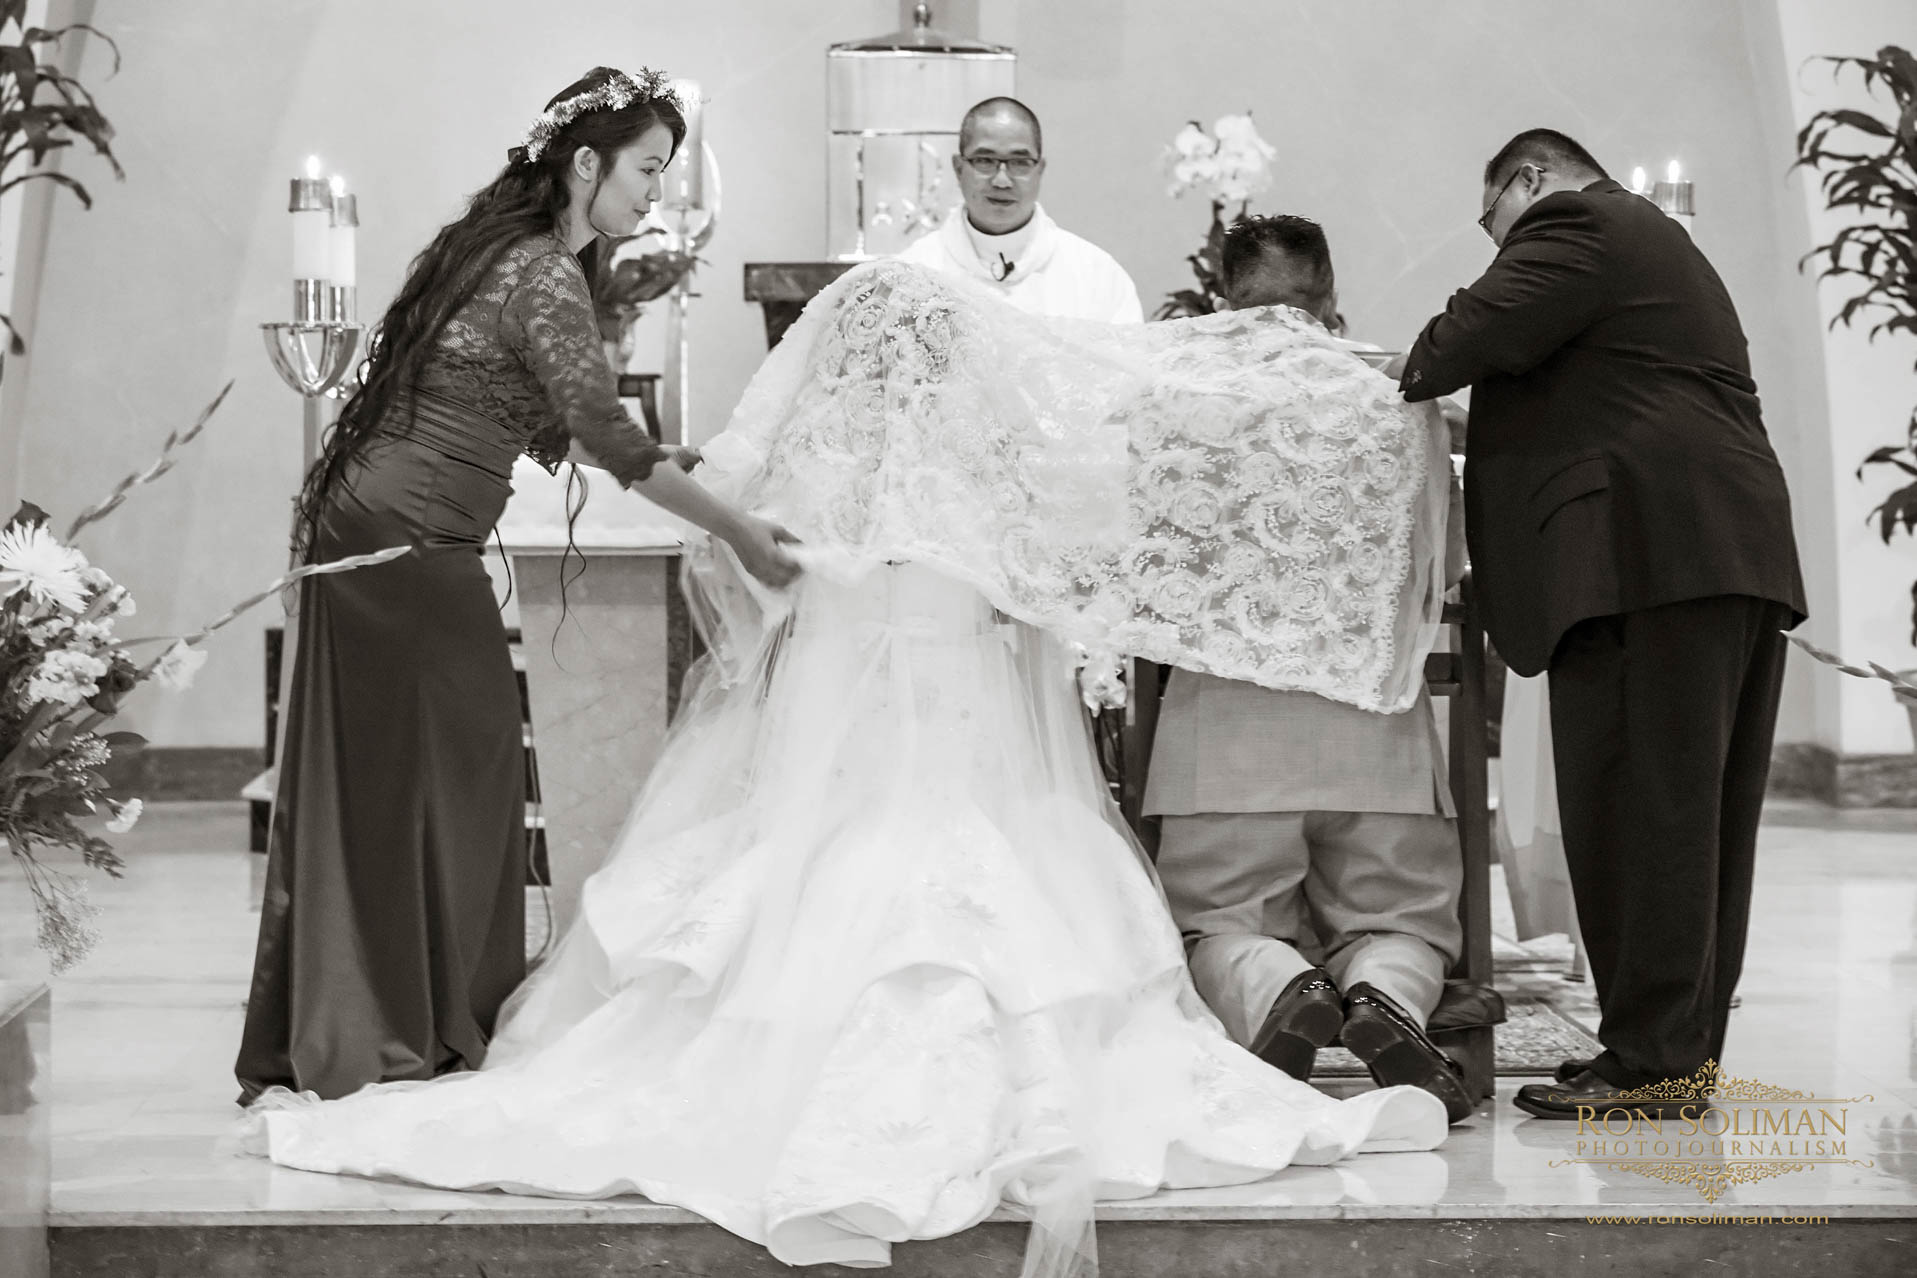 Filipino wedding photos